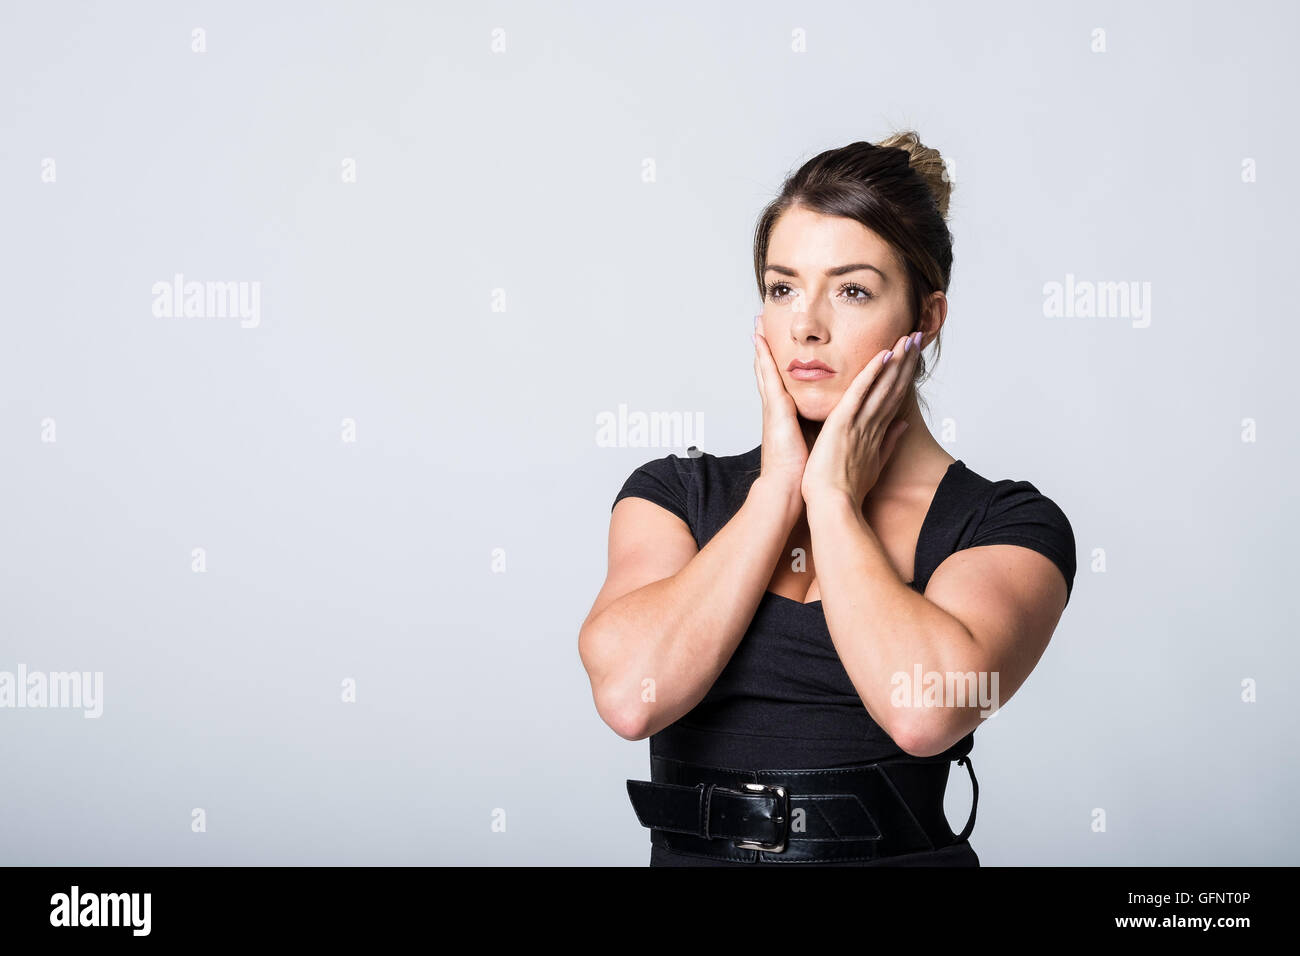 Woman cups her face with her hands in worry - Stock Image